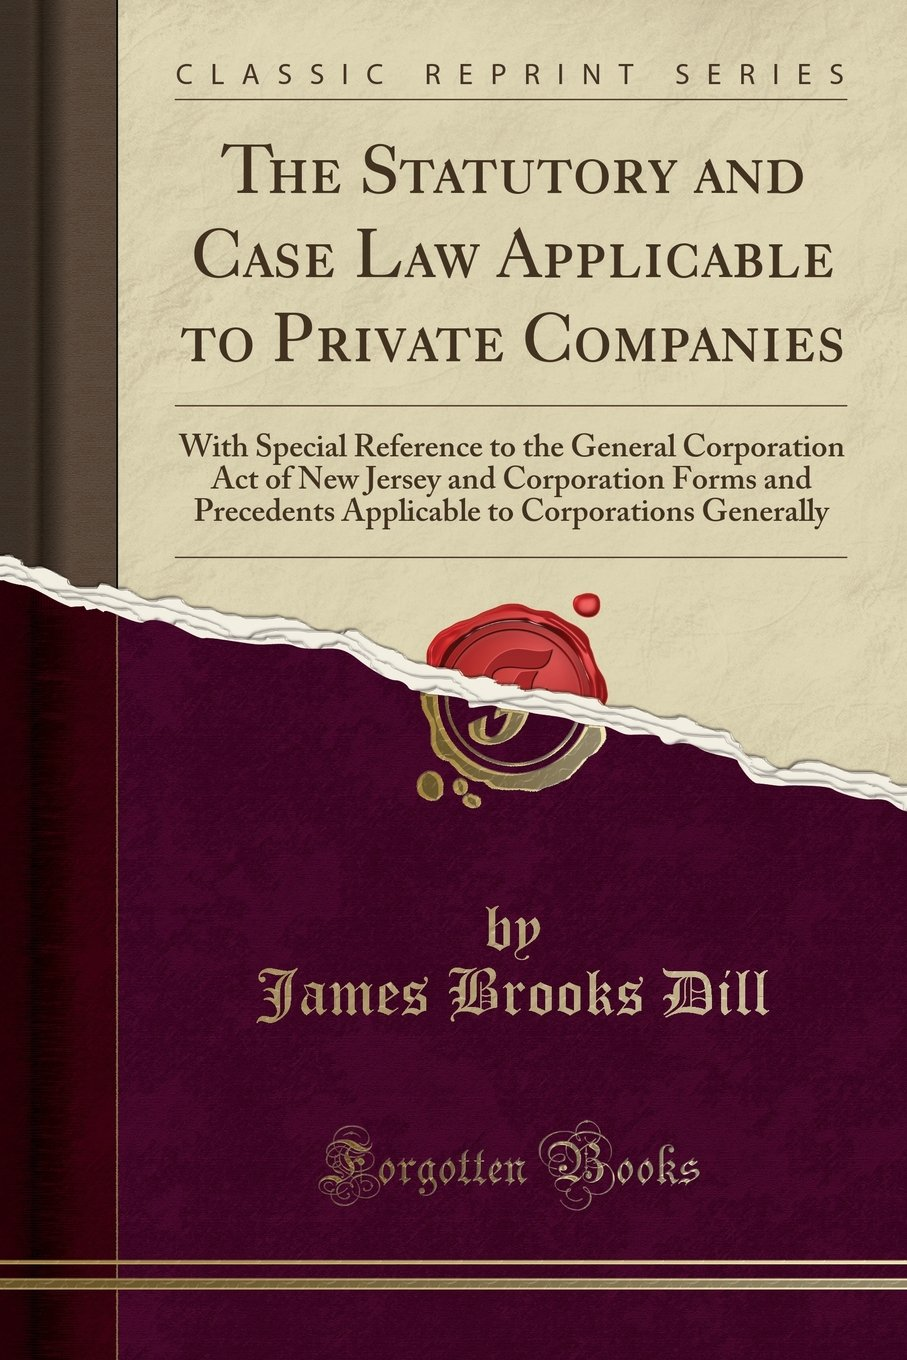 Download The Statutory and Case Law Applicable to Private Companies: With Special Reference to the General Corporation Act of New Jersey and Corporation Forms ... to Corporations Generally (Classic Reprint) pdf